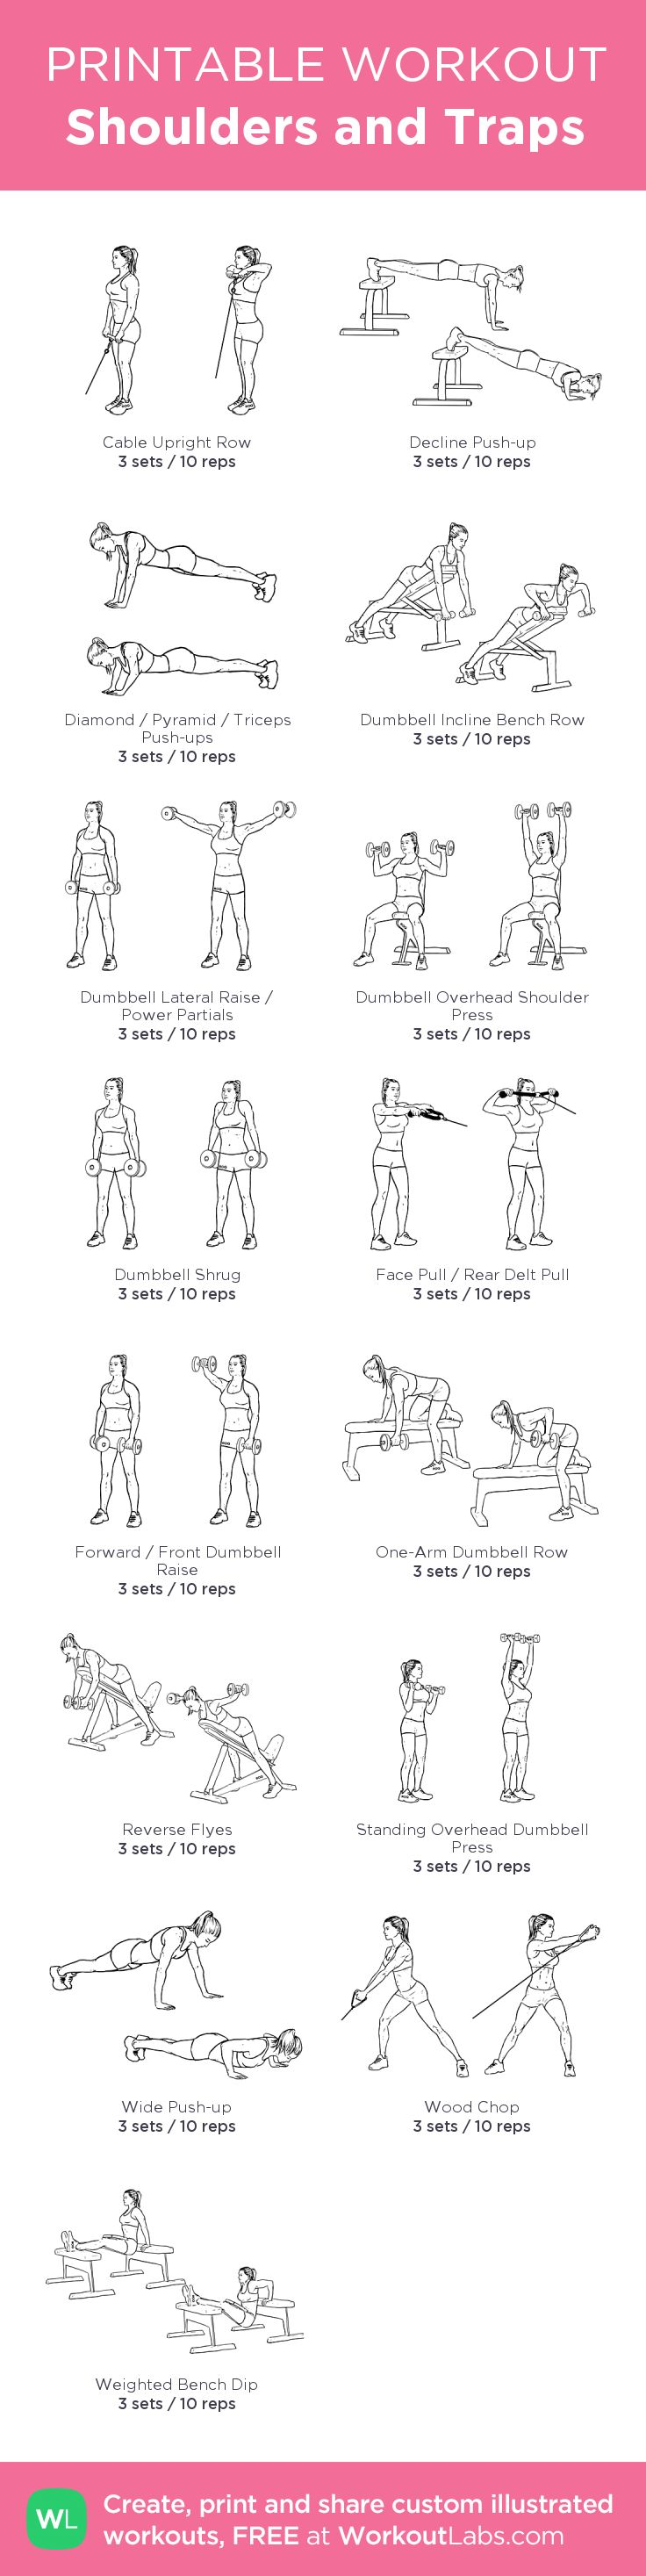 Shoulders and Traps –my custom workout created at WorkoutLabs.com • Click through to download as printable PDF! #customworkout